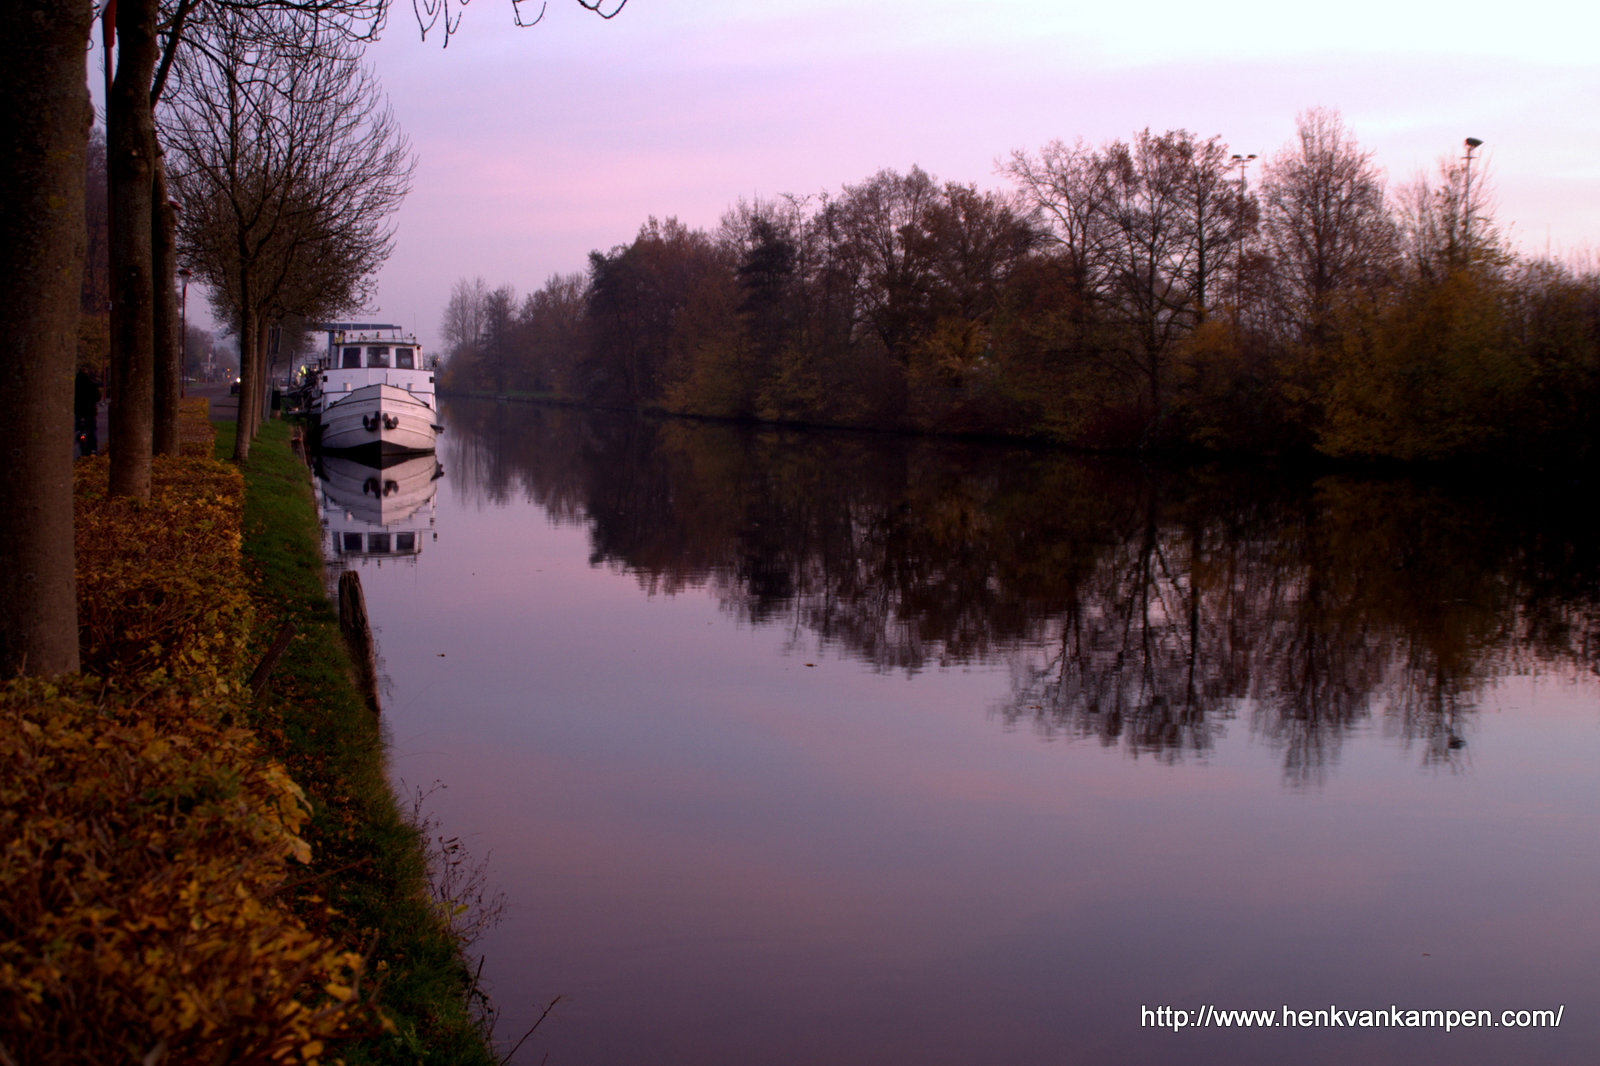 The Merwede canal at dawn